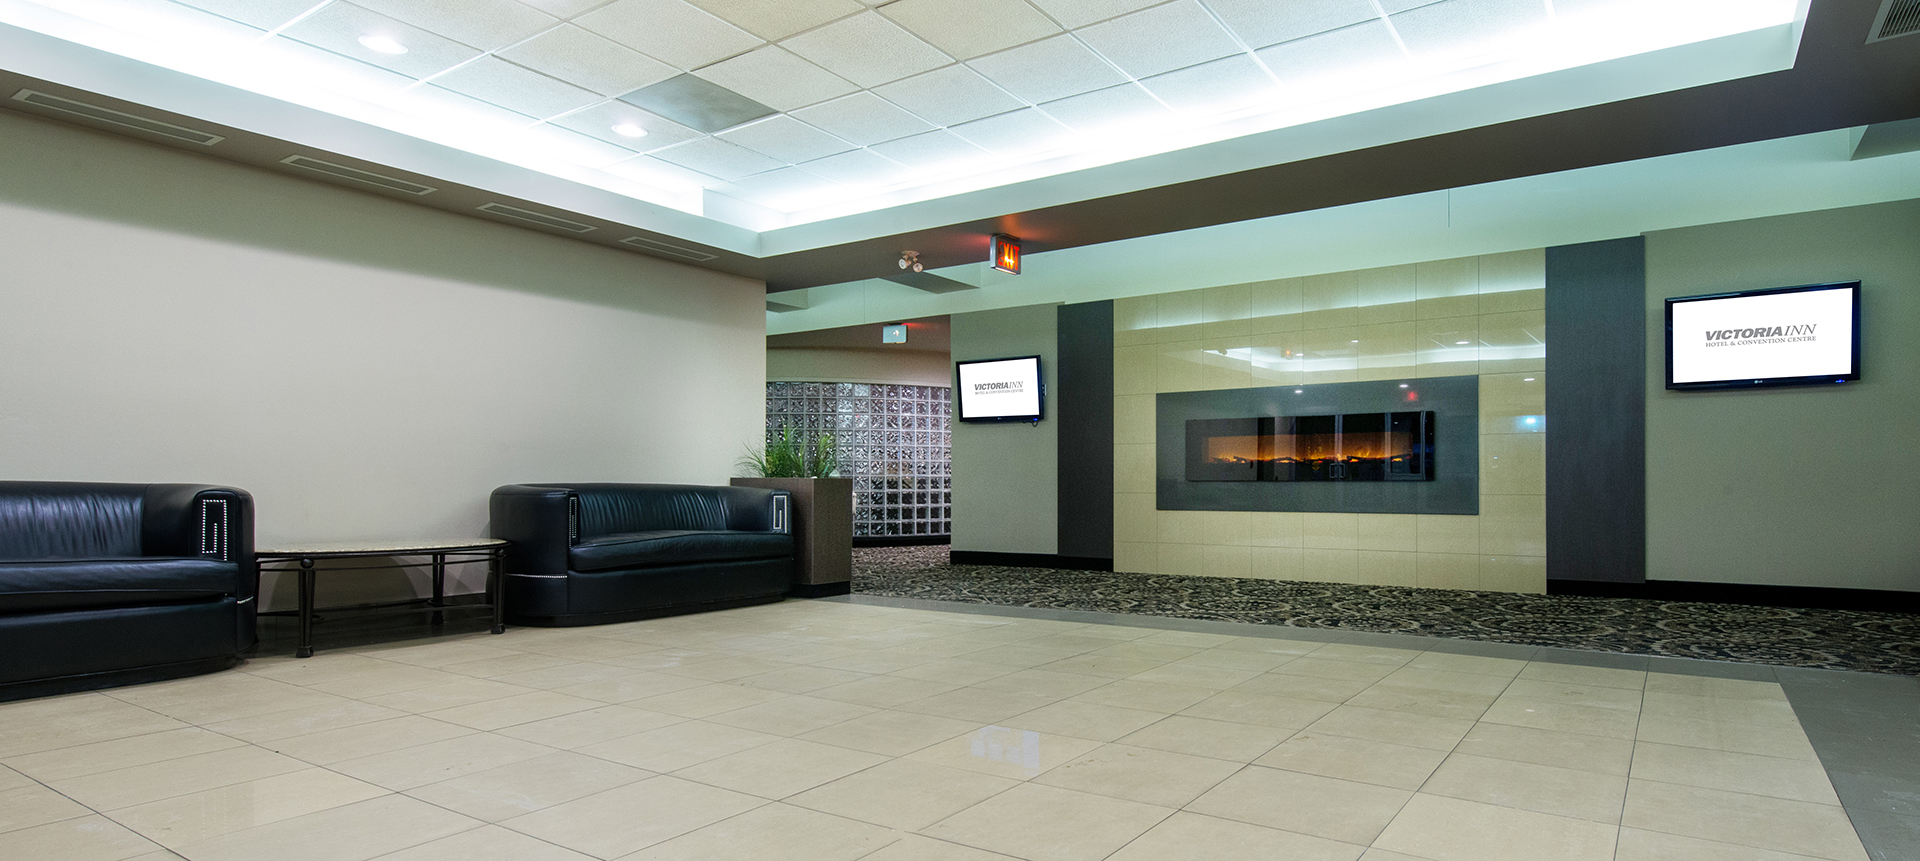 Thunder Bay Airport Hotel | Victoria Inn | Thunder Bay, ON